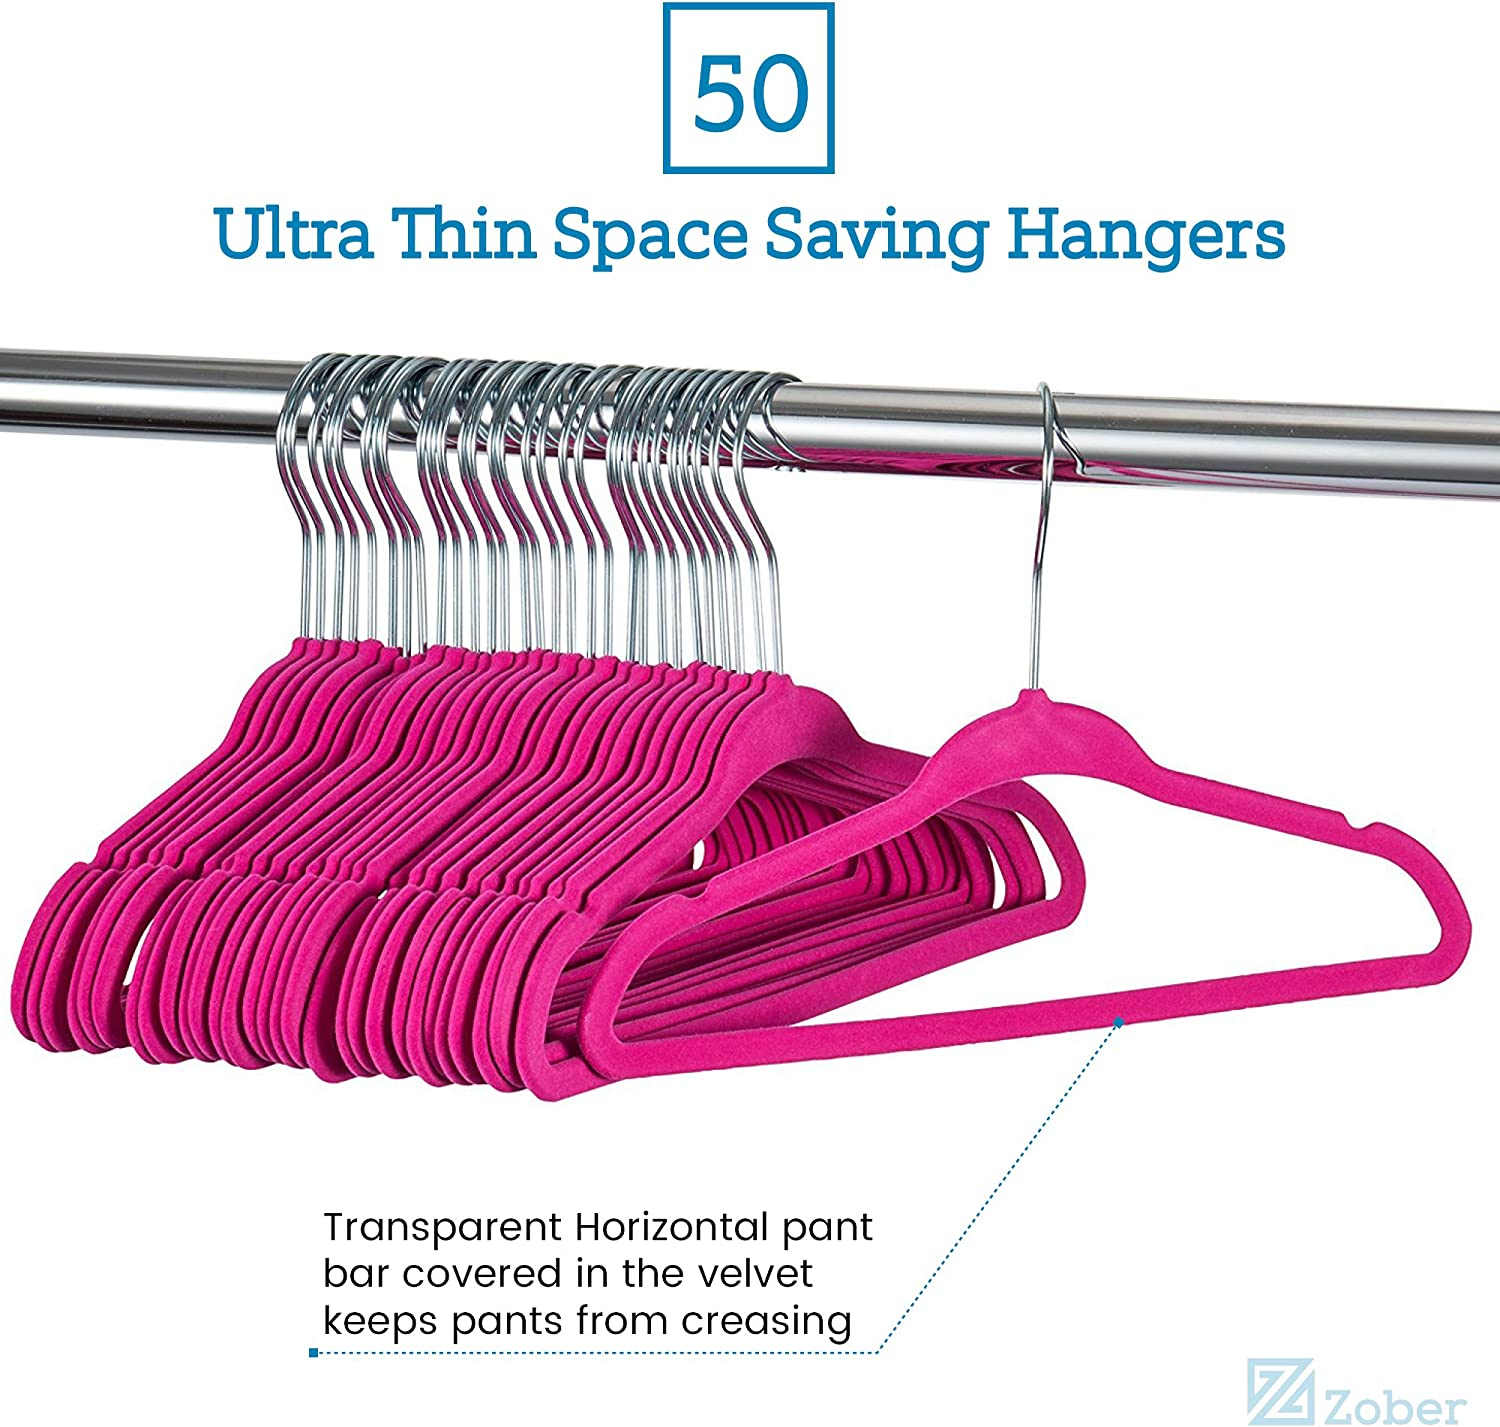 Space Saving Set of 20 Perfect for Shirts Pants Suits Dresses 360/°Swivel Hook Dream-home Children Plastic Clothes Hangers Made in EU SILVER Ideal for Household Strong /& Durable